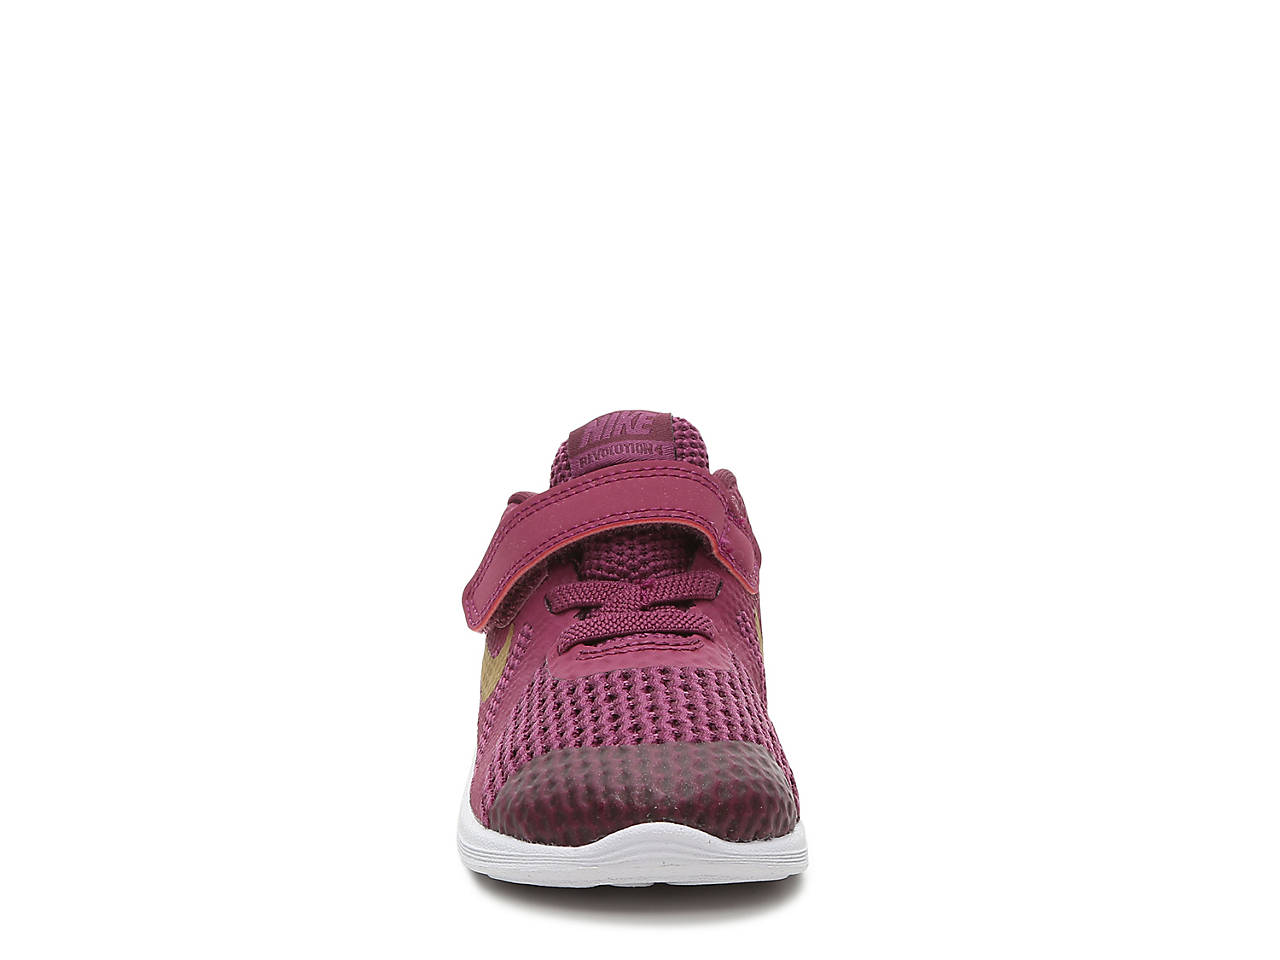 b862ef5ad4059 Home · Girls' Shoes · Sneakers; Revolution 4 Running Shoe - Kids'. previous